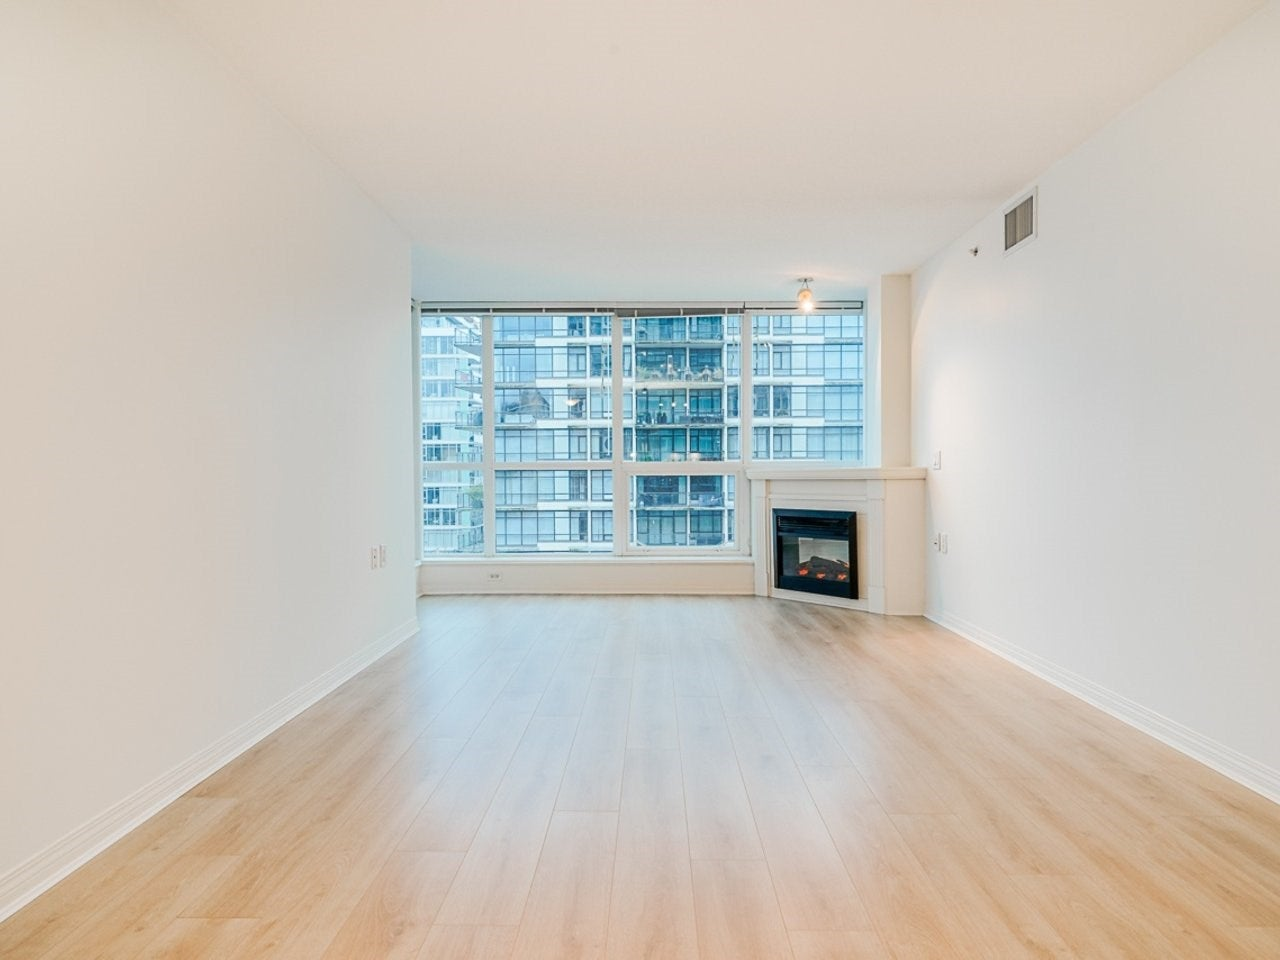 604 188 E ESPLANADE - Lower Lonsdale Apartment/Condo for sale, 2 Bedrooms (R2528391) - #12